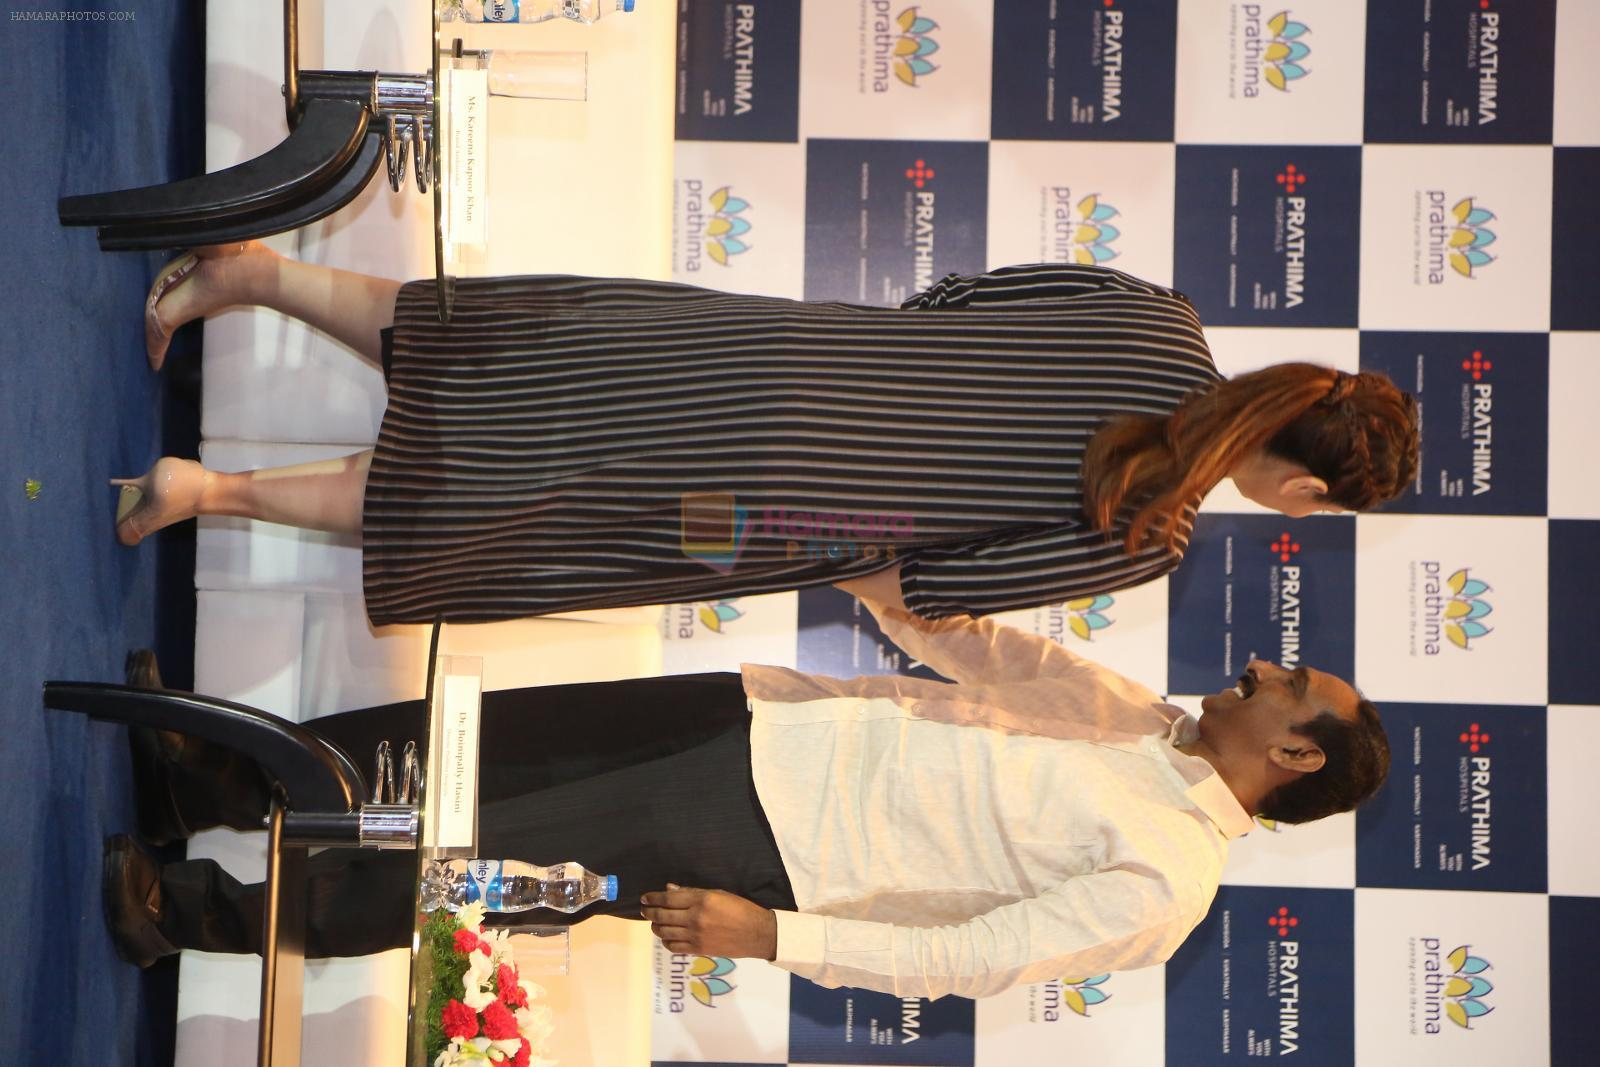 saif ali khan and kareena kapoor at prathima hospitals brand ambassador on 1st Oct 2016